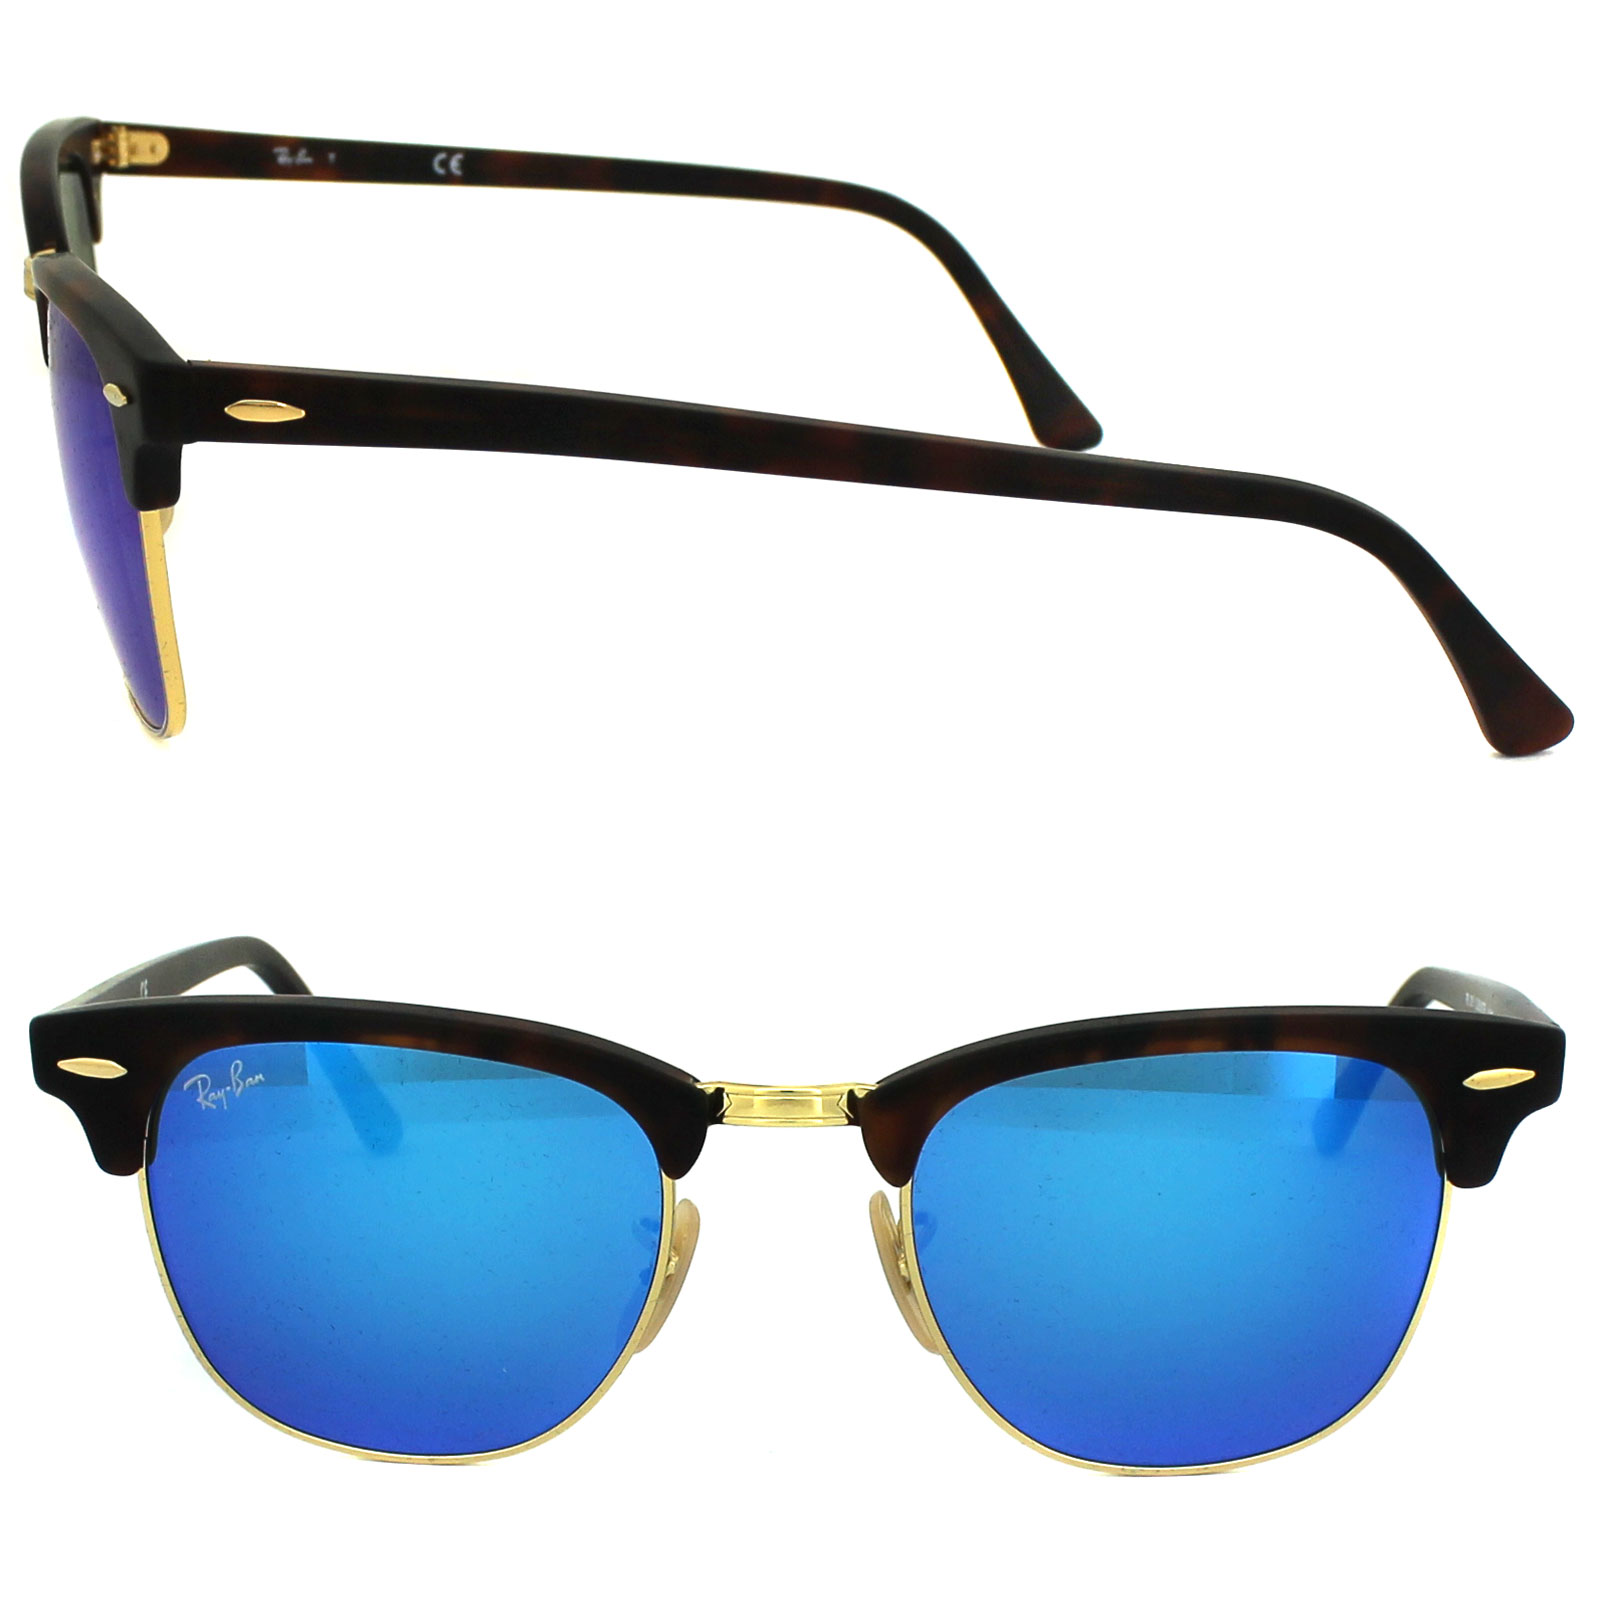 ray-ban clubmaster rb3016 sunglasses - tort/blue